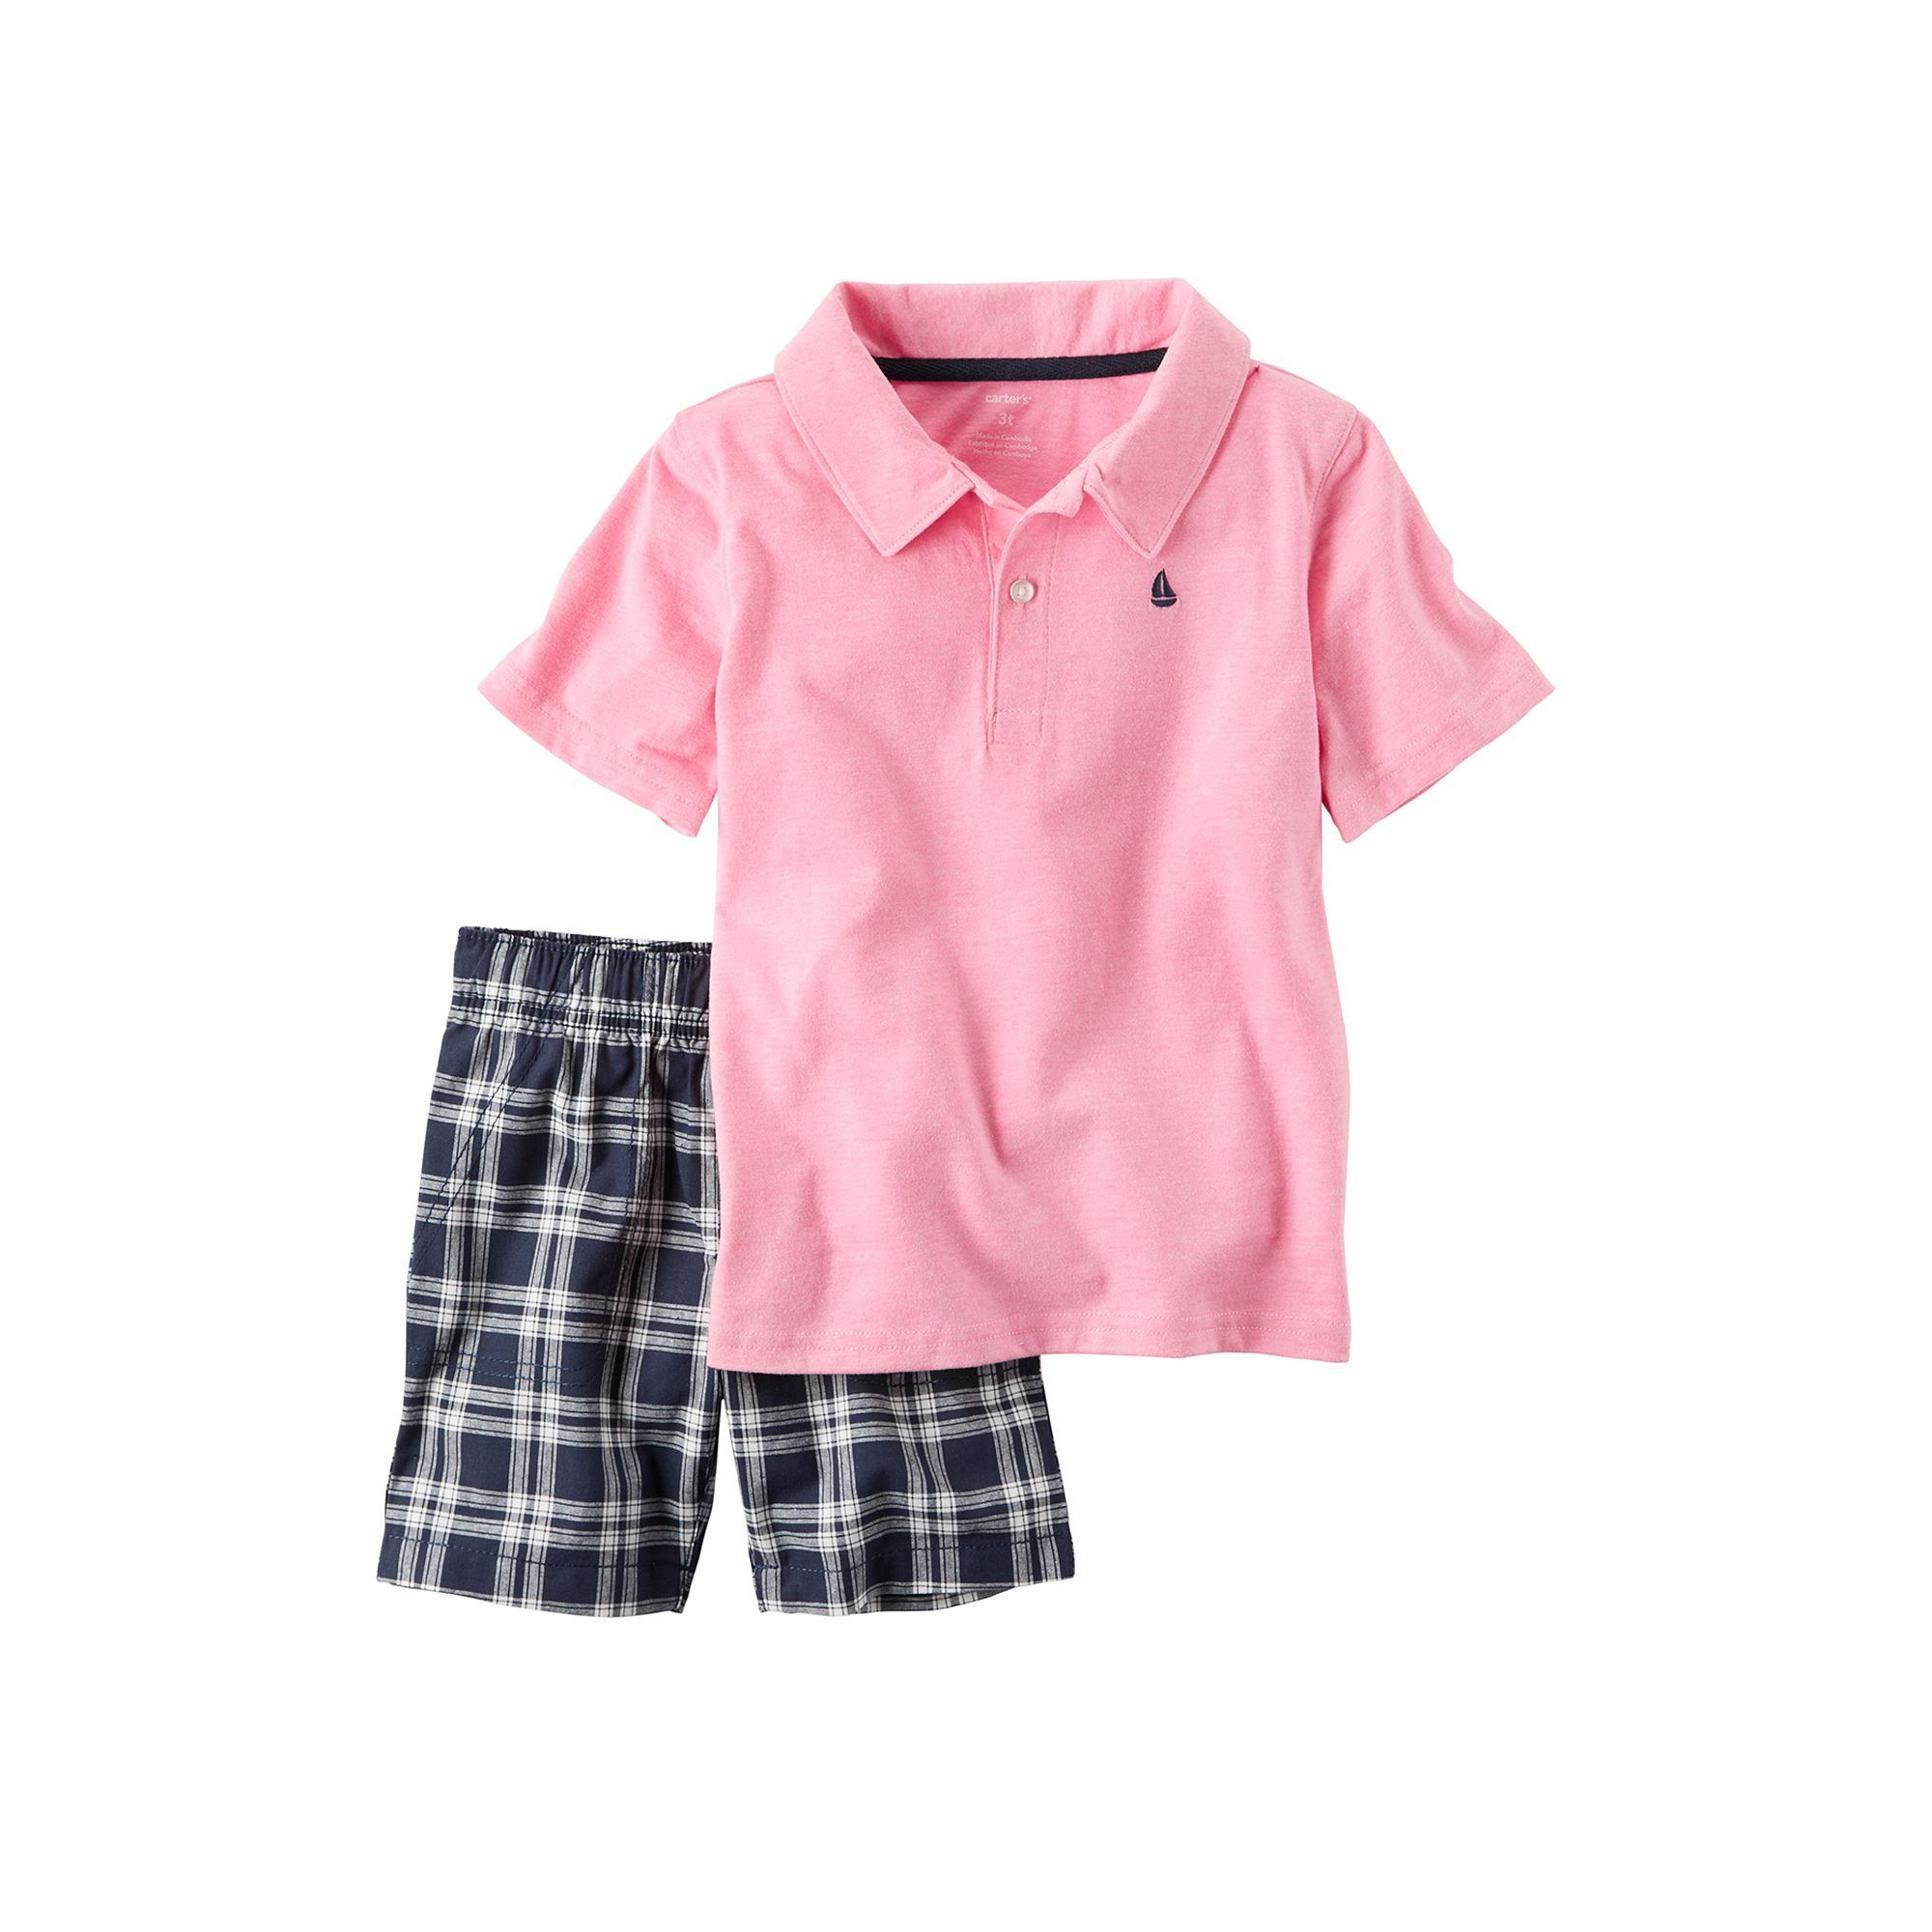 4f1ed15b8 Toddler Boy Carter's Short Sleeve Pink Polo Shirt & Plaid Shorts Set, Size:  4T